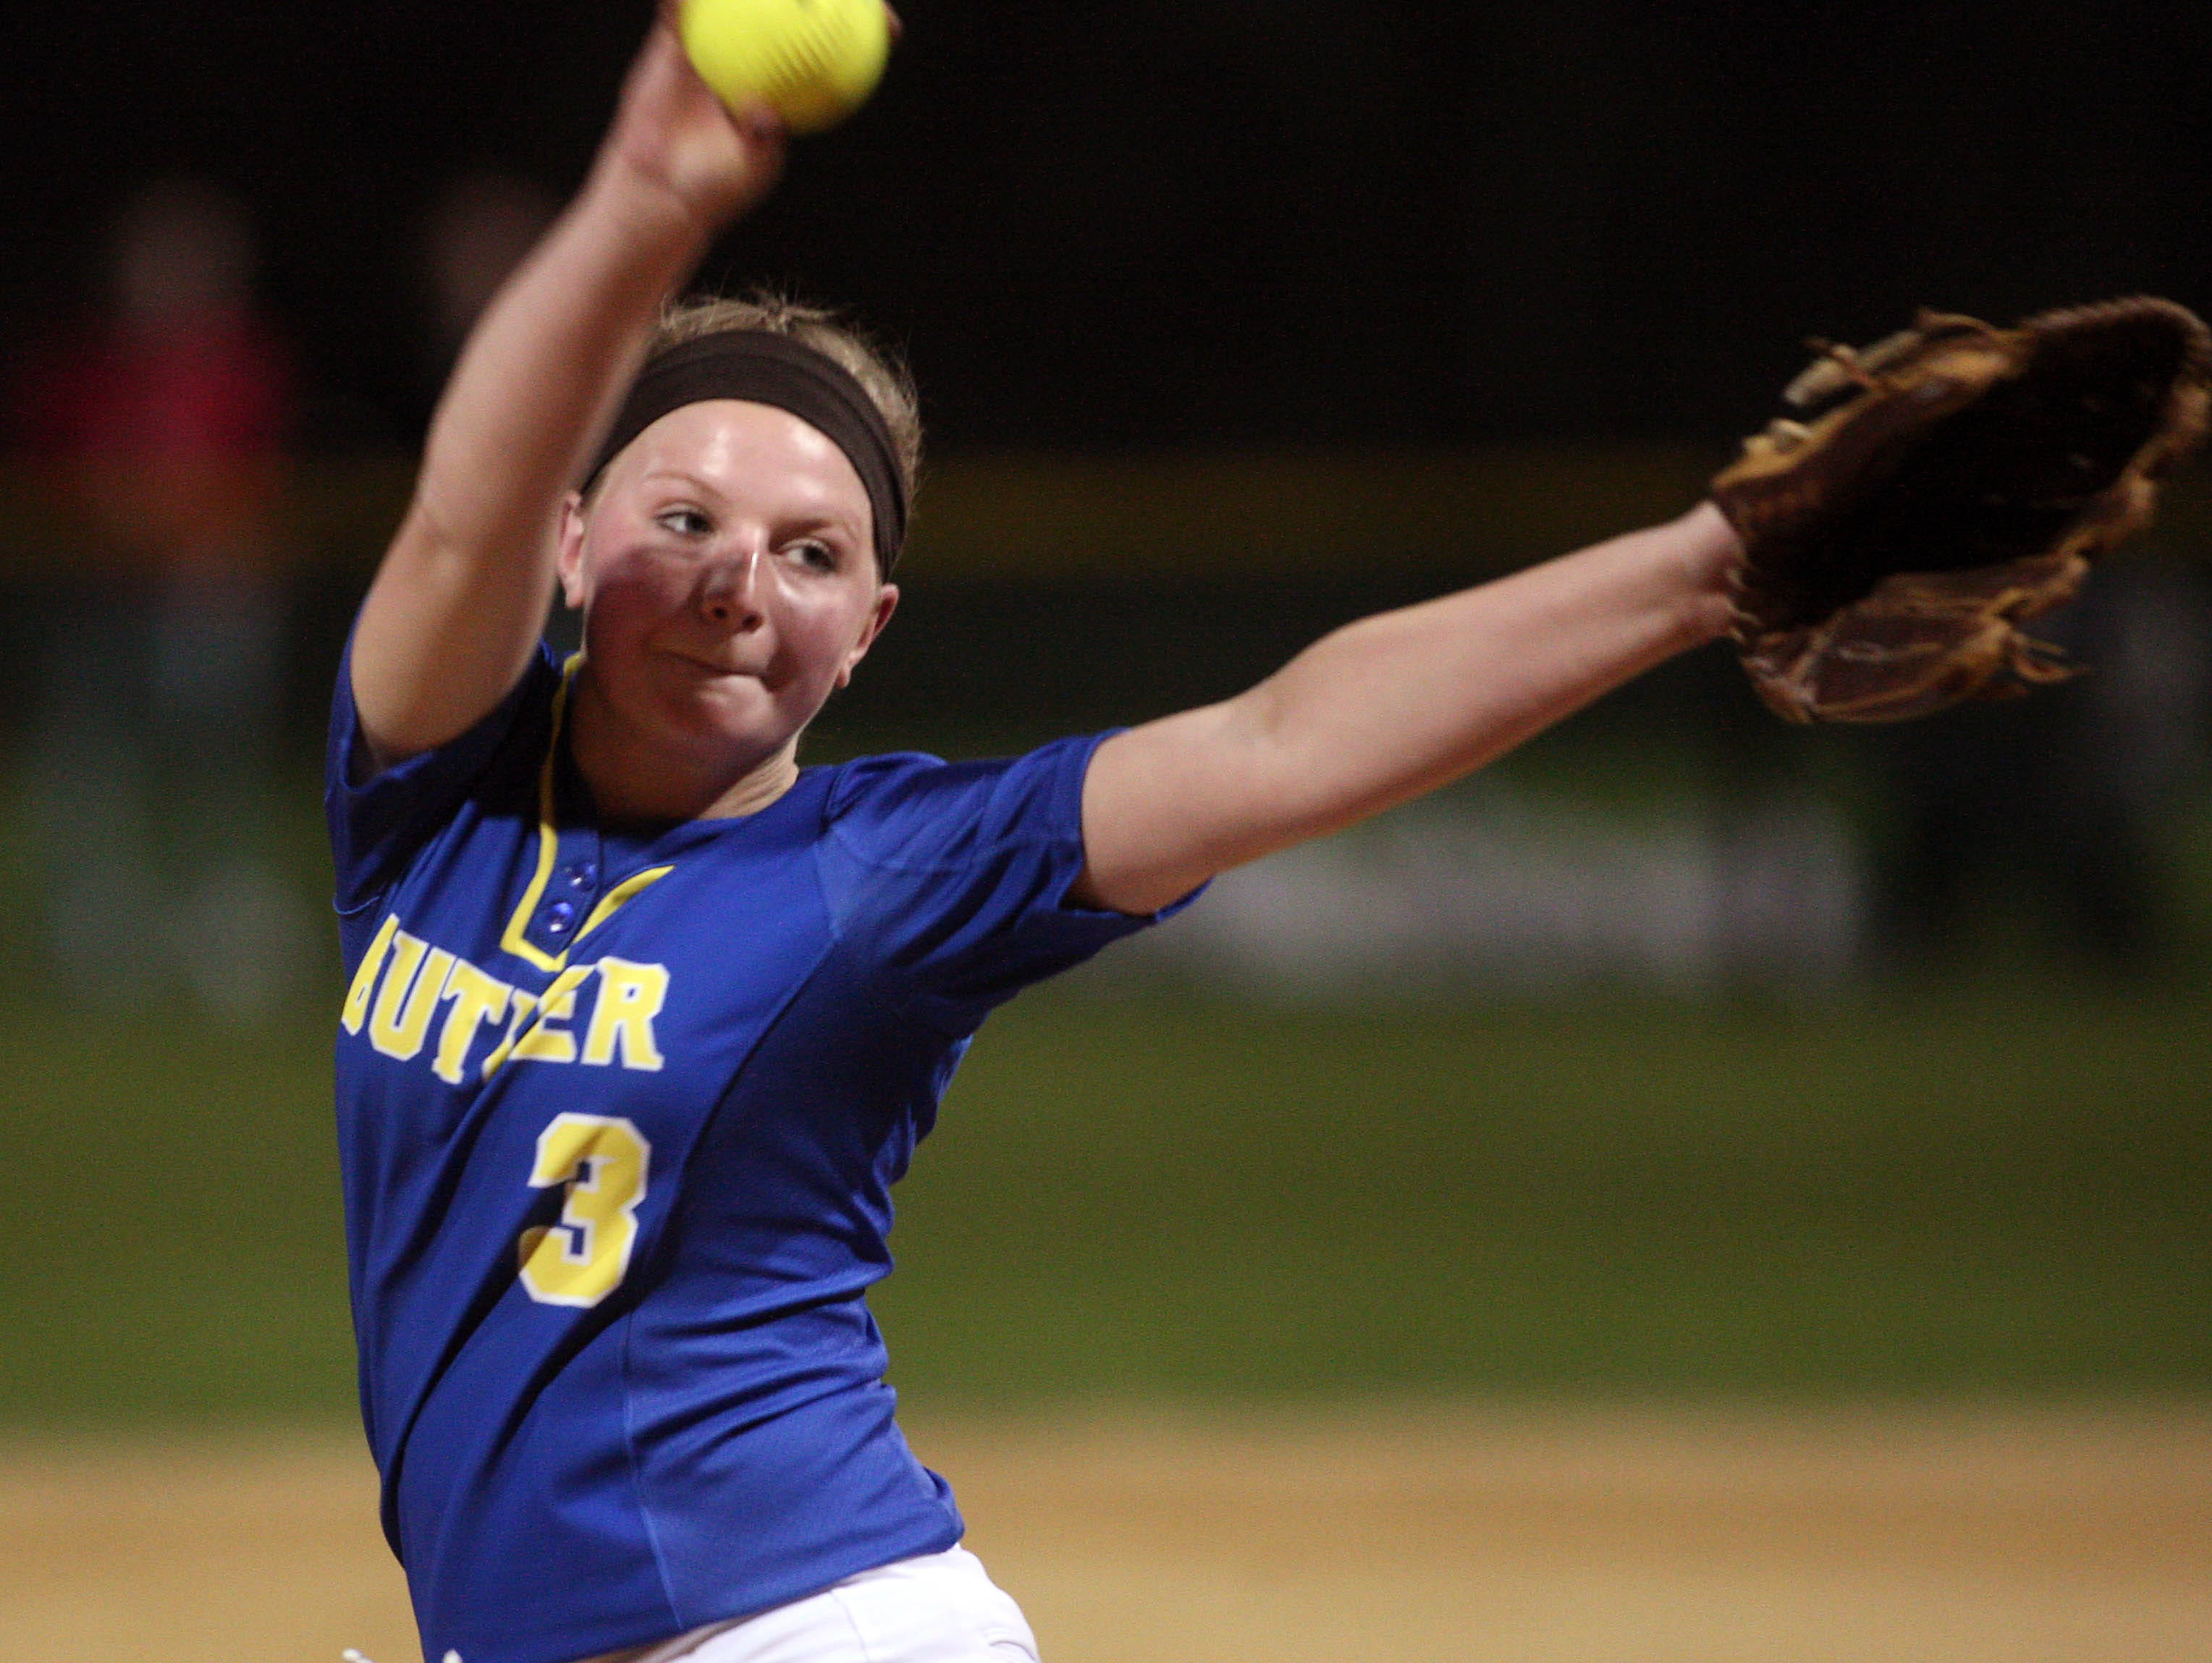 Pitcher Larissa Spellman and the Butler softball team earned the top seed for the Morris County Tournament for the second year in a row Tuesday night.